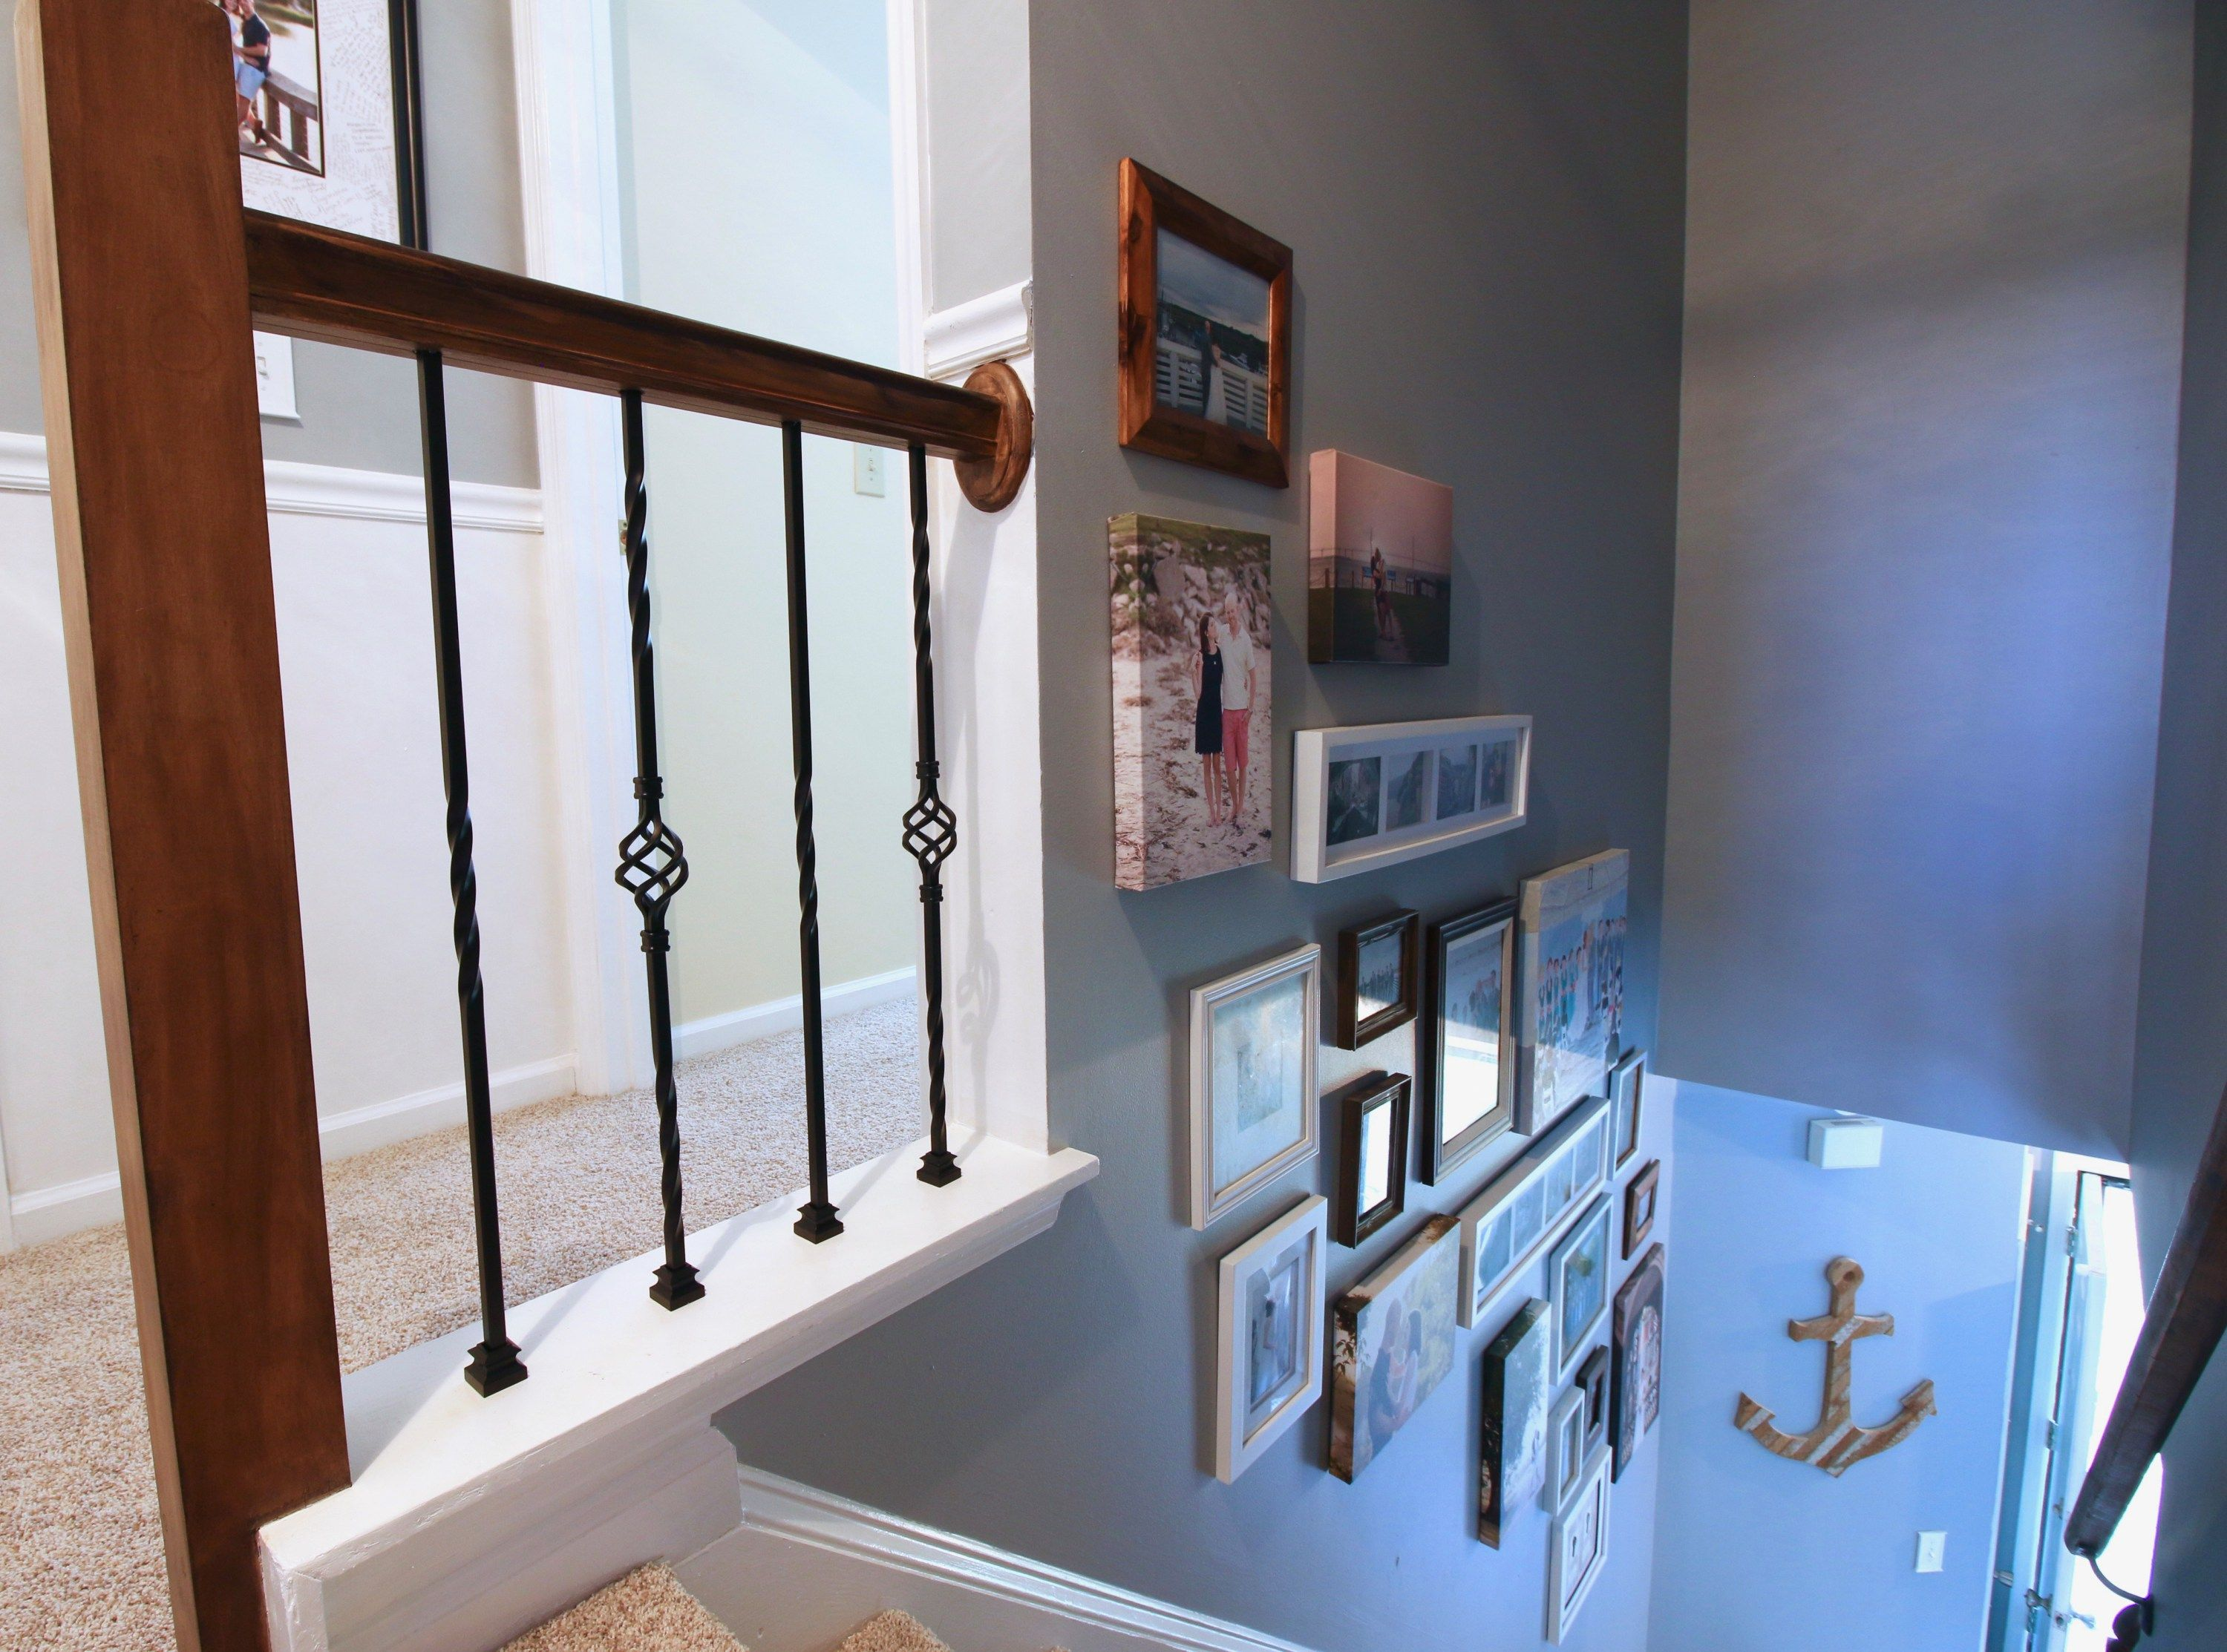 Best How To Replace Wooden Balusters With Iron The Easy And Cheap Way Home Upgrades Stair 640 x 480